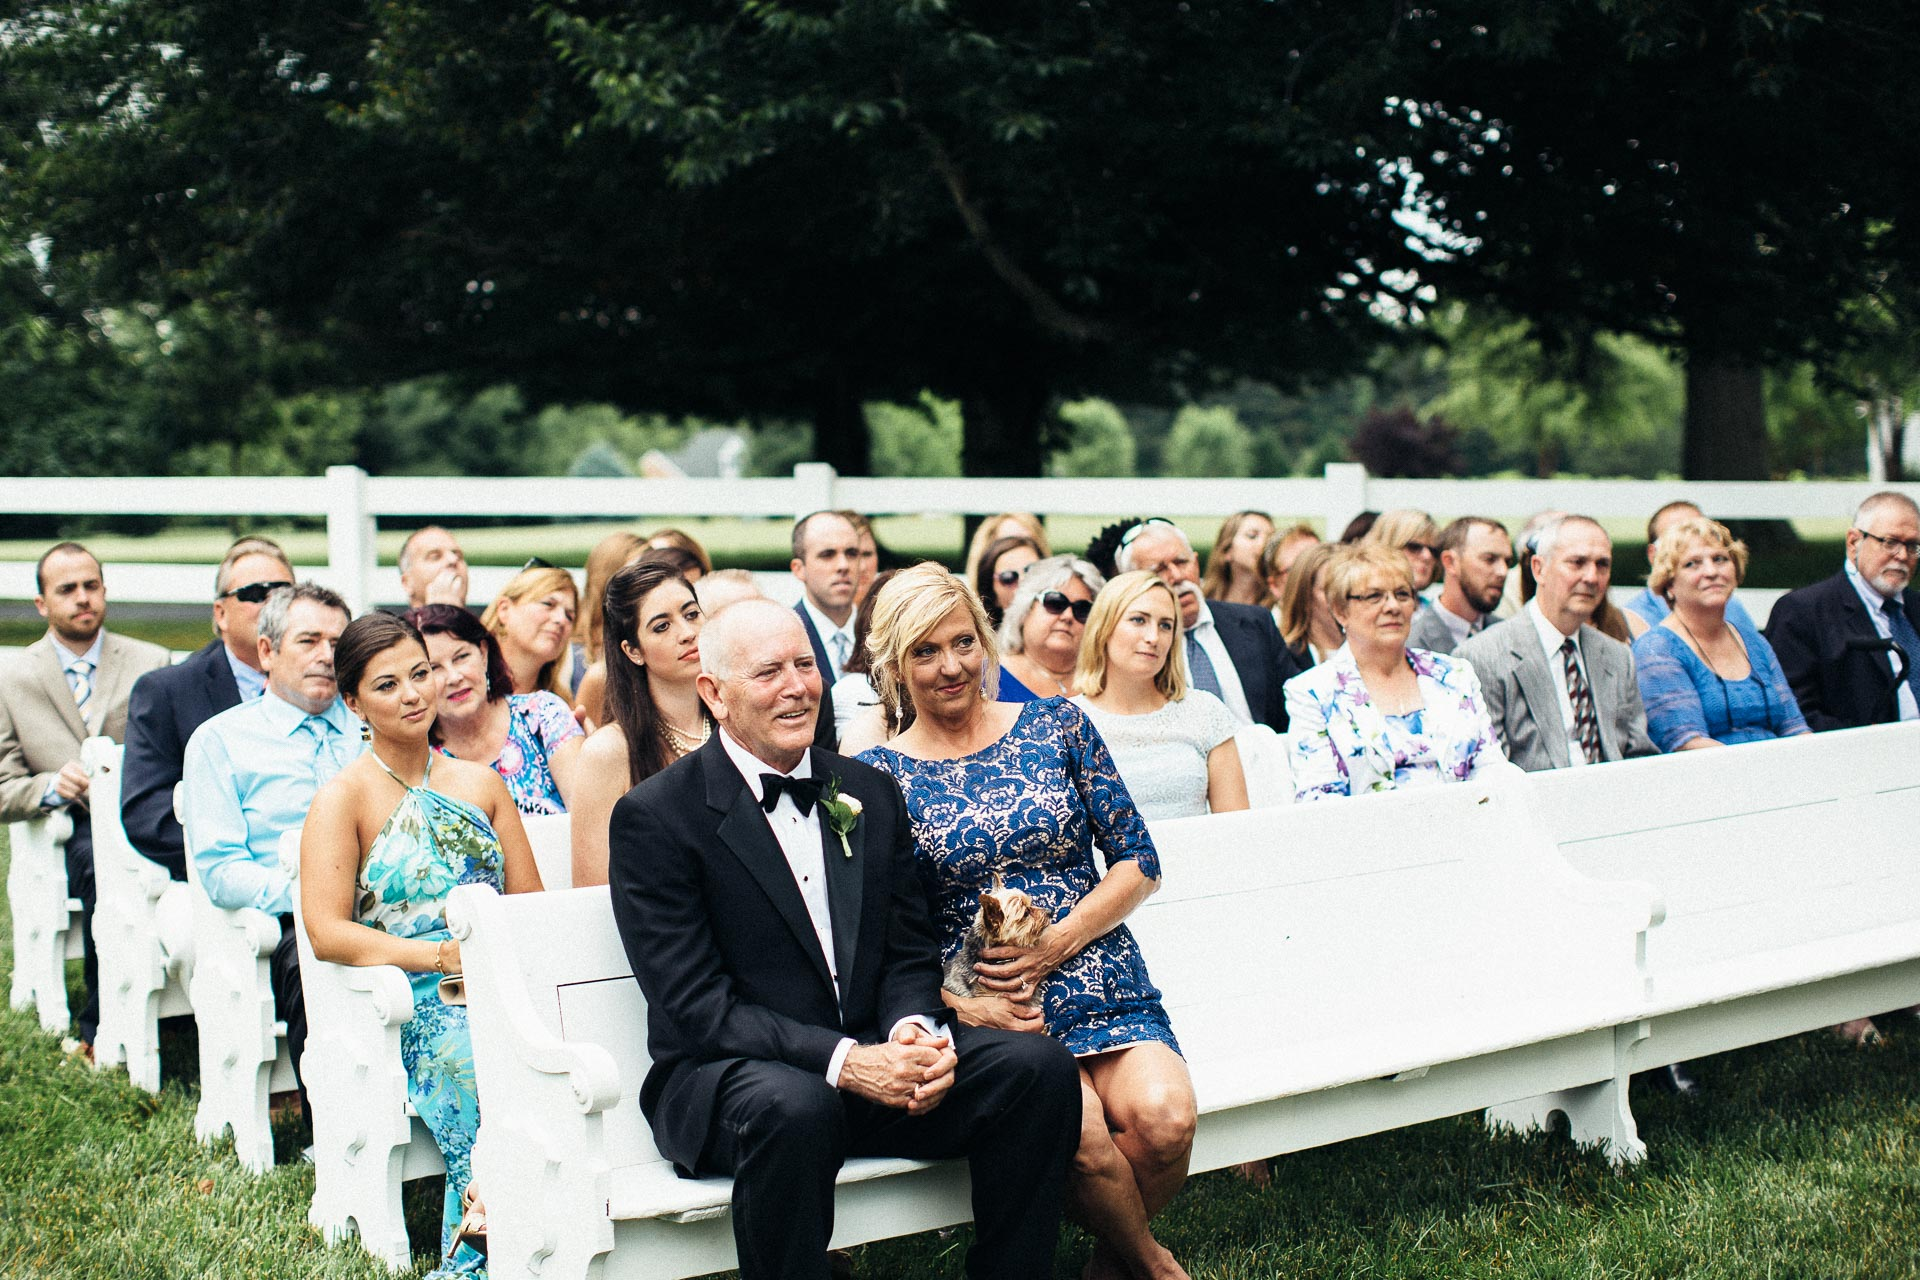 Shawna_Josh_Wedding_Easton_Maryland_JeanLaurentGaudy_081